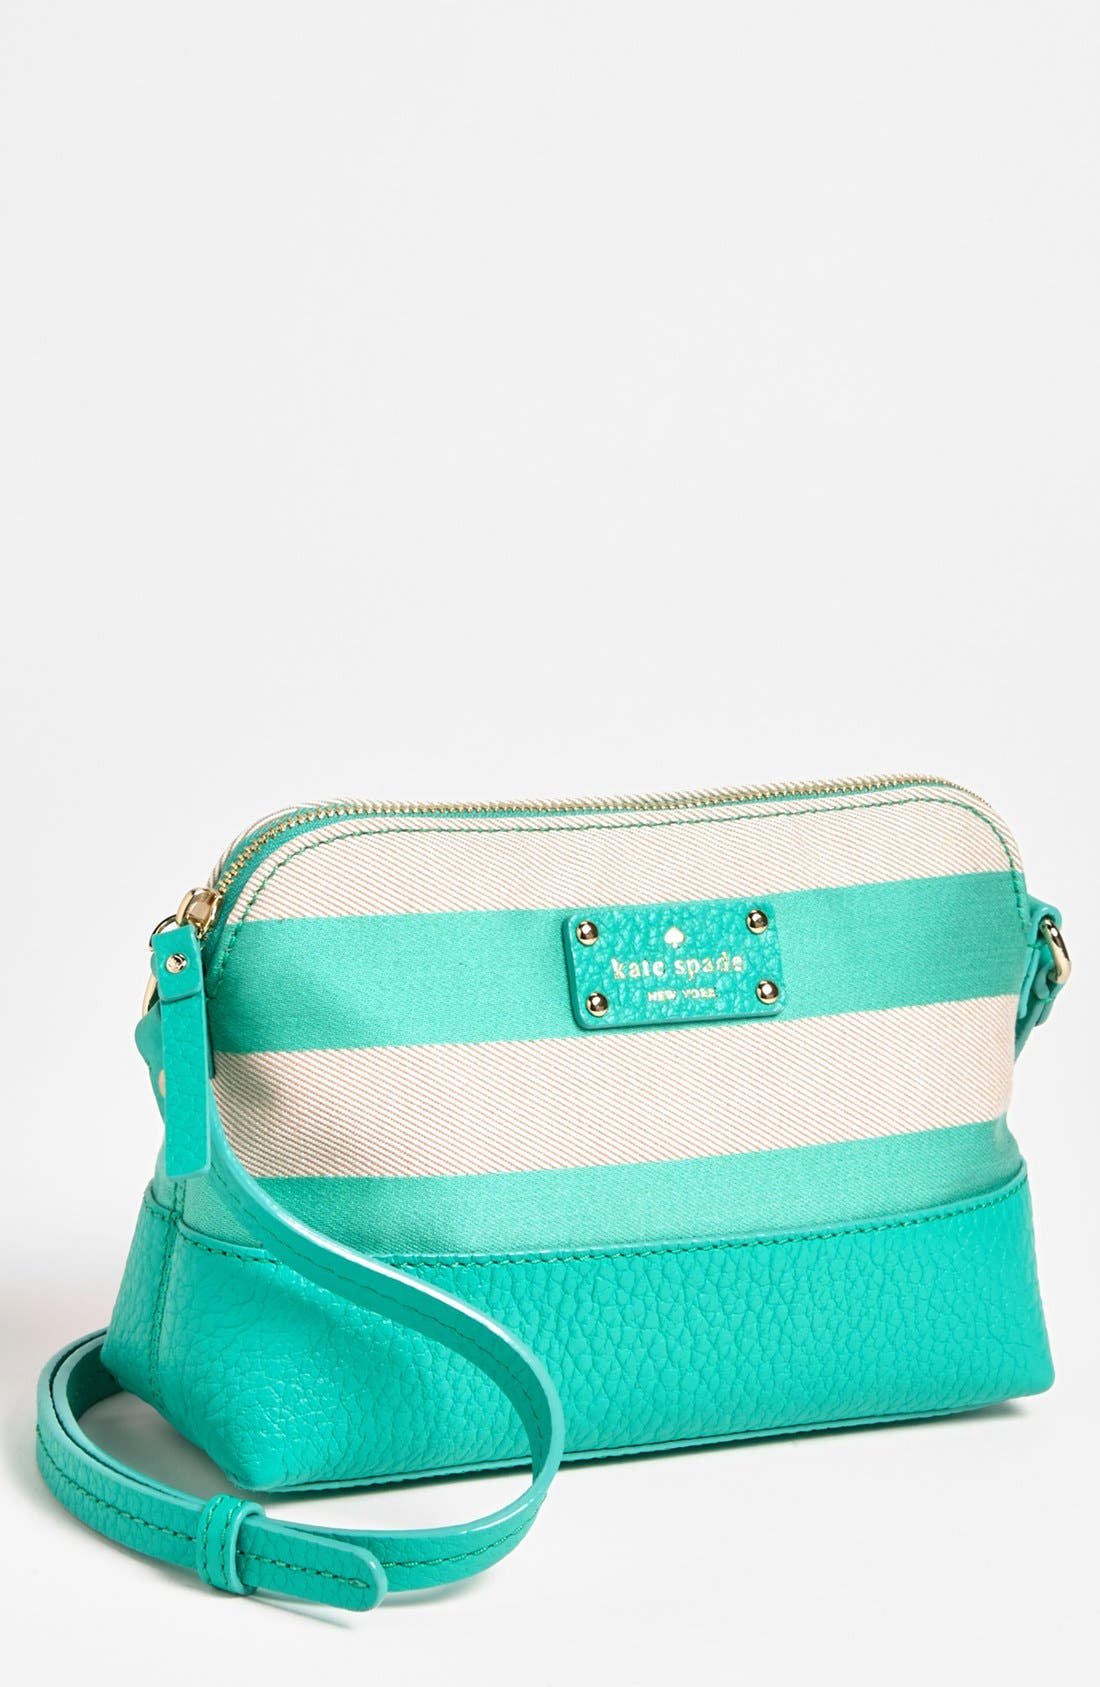 Alternate Image 1 Selected - kate spade new york 'grove court - mandy' crossbody bag, small